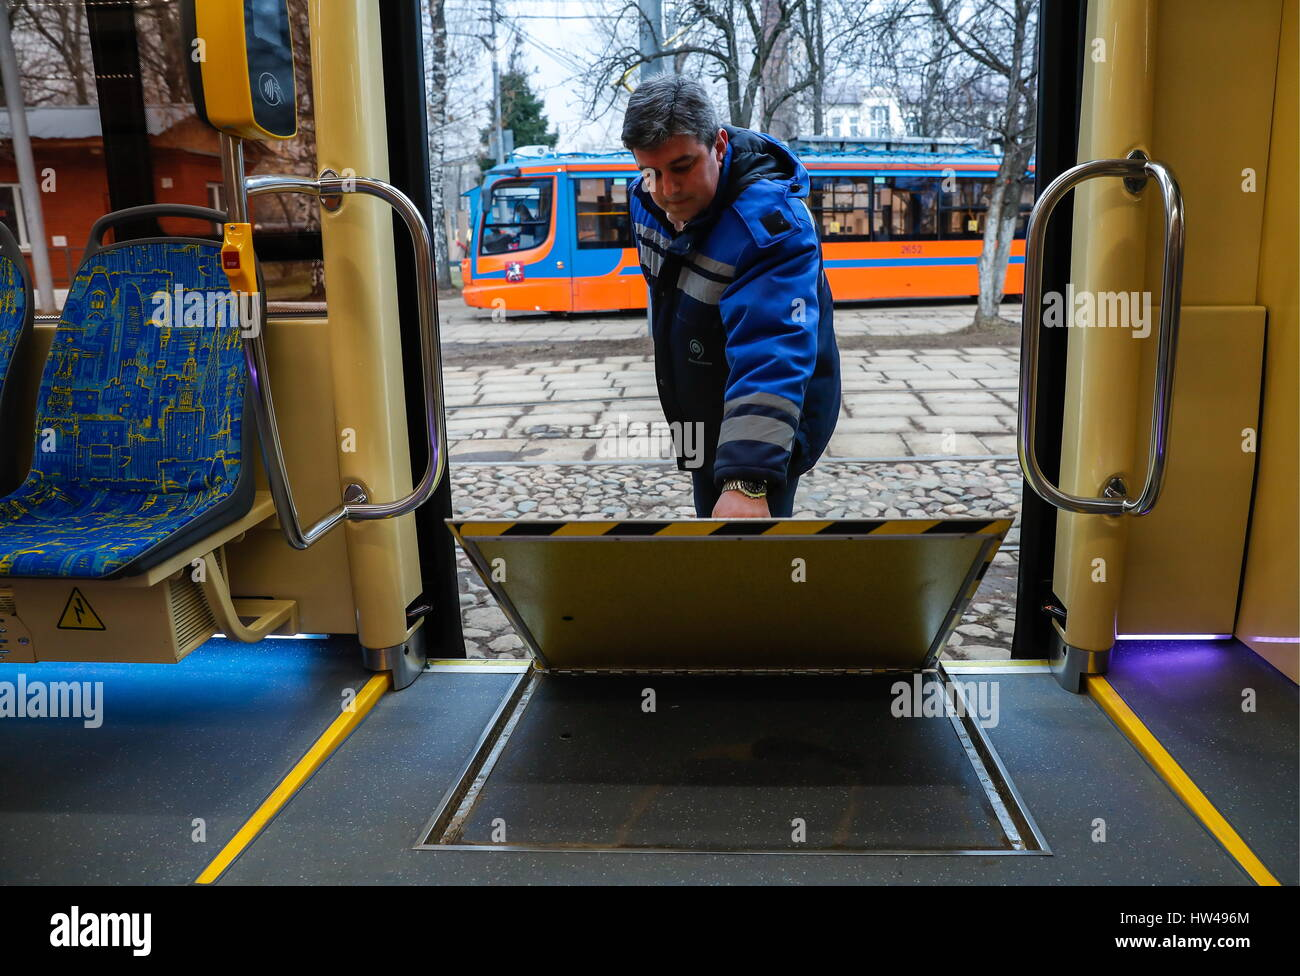 Moscow Russia 17th Mar 2017 A Wheelchair Ramp In A New